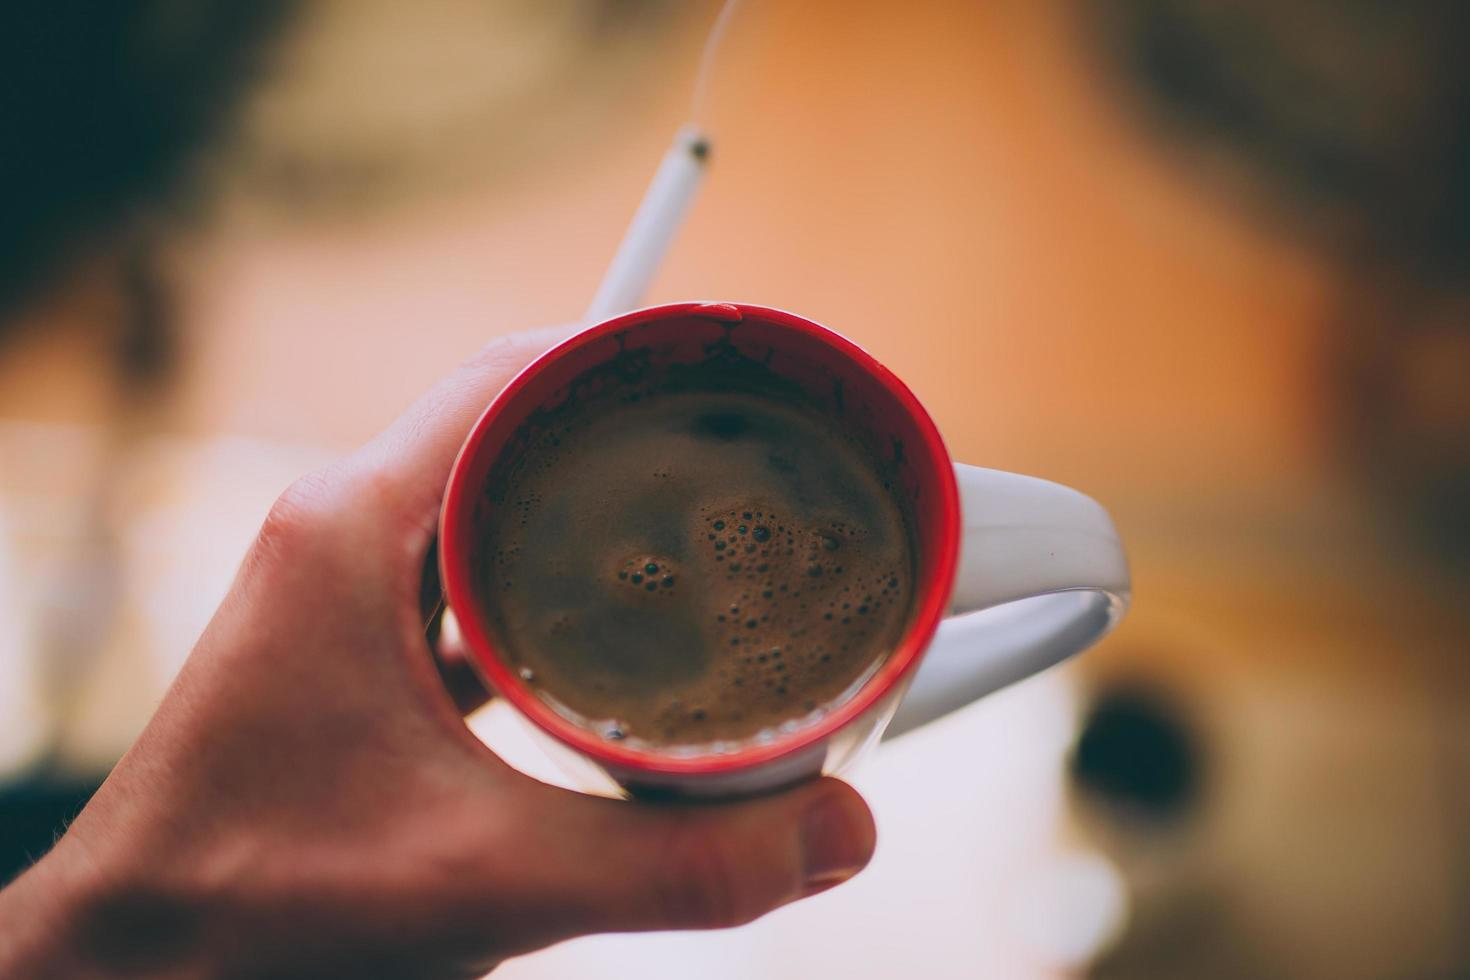 Hand holding cigarette and coffee in mug photo